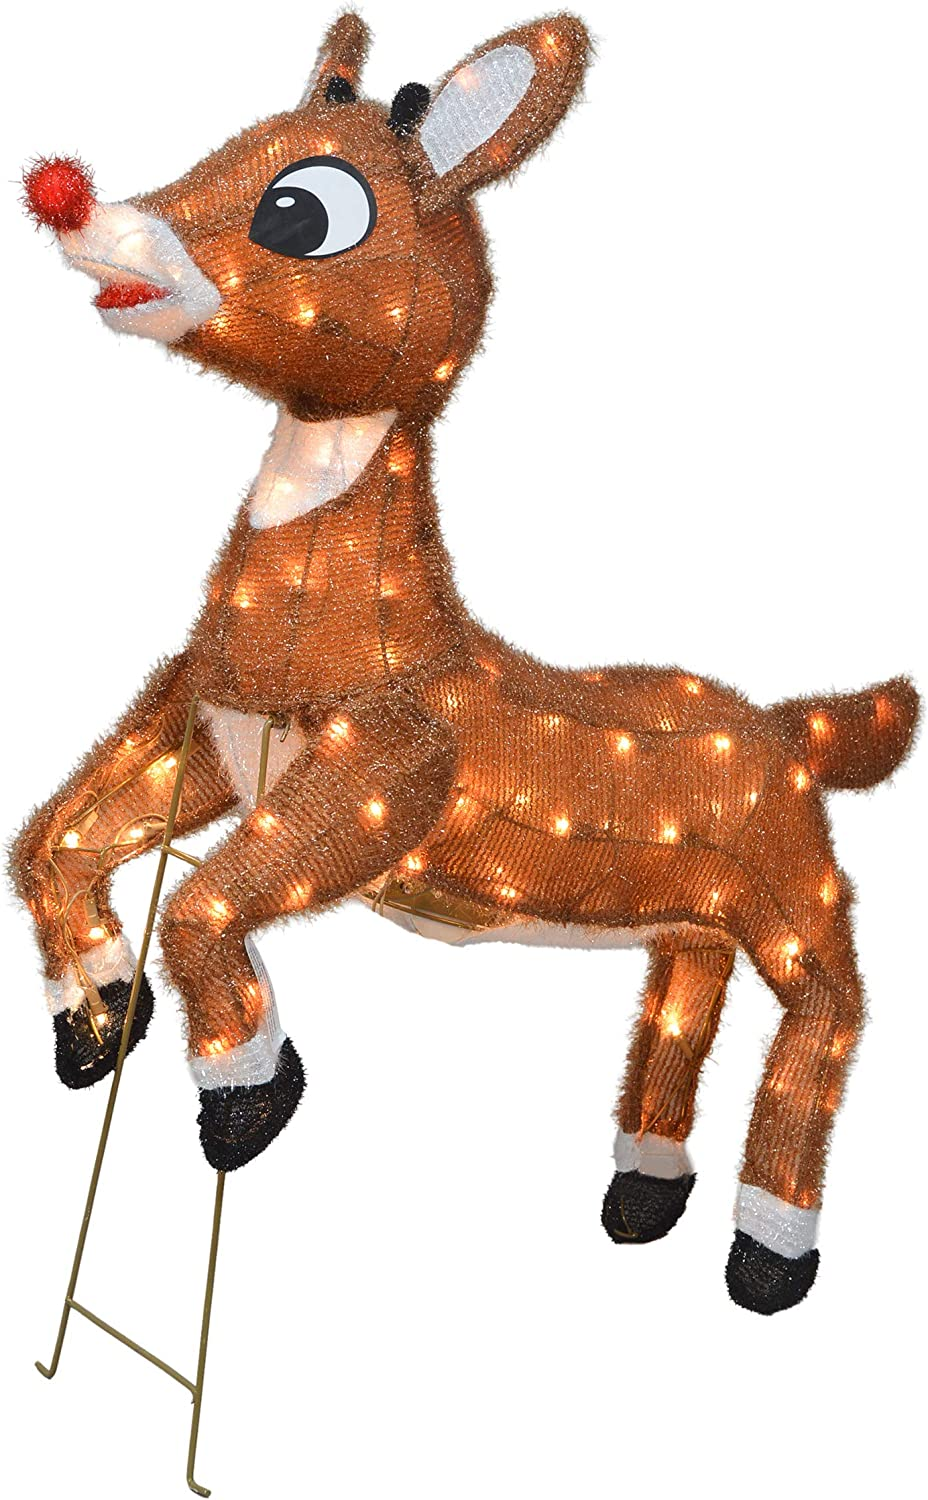 TisYourSeason 3D Rudolph The Red-Nosed sale OFFicial site Reindeer Animated Out 36